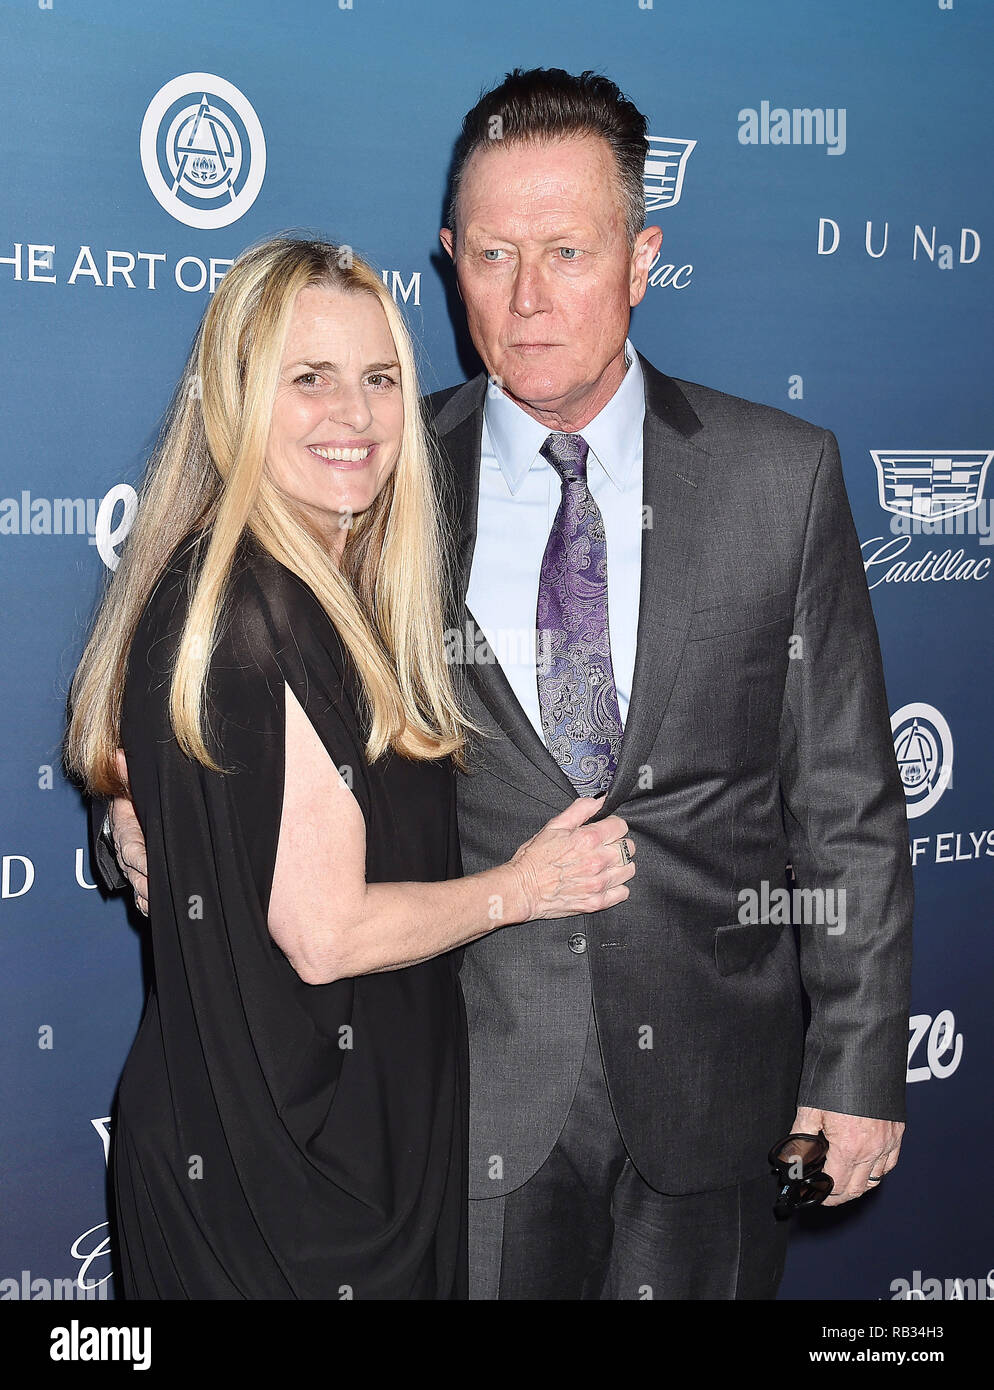 Los Angeles, USA. 5 January 2019. Barbara Patrick (L) and Robert Patrick attend Michael Muller's HEAVEN, presented by The Art of Elysium at a private venue on January 5, 2019 in Los Angeles, California. Credit: Jeffrey Mayer/Alamy Live News - Stock Image